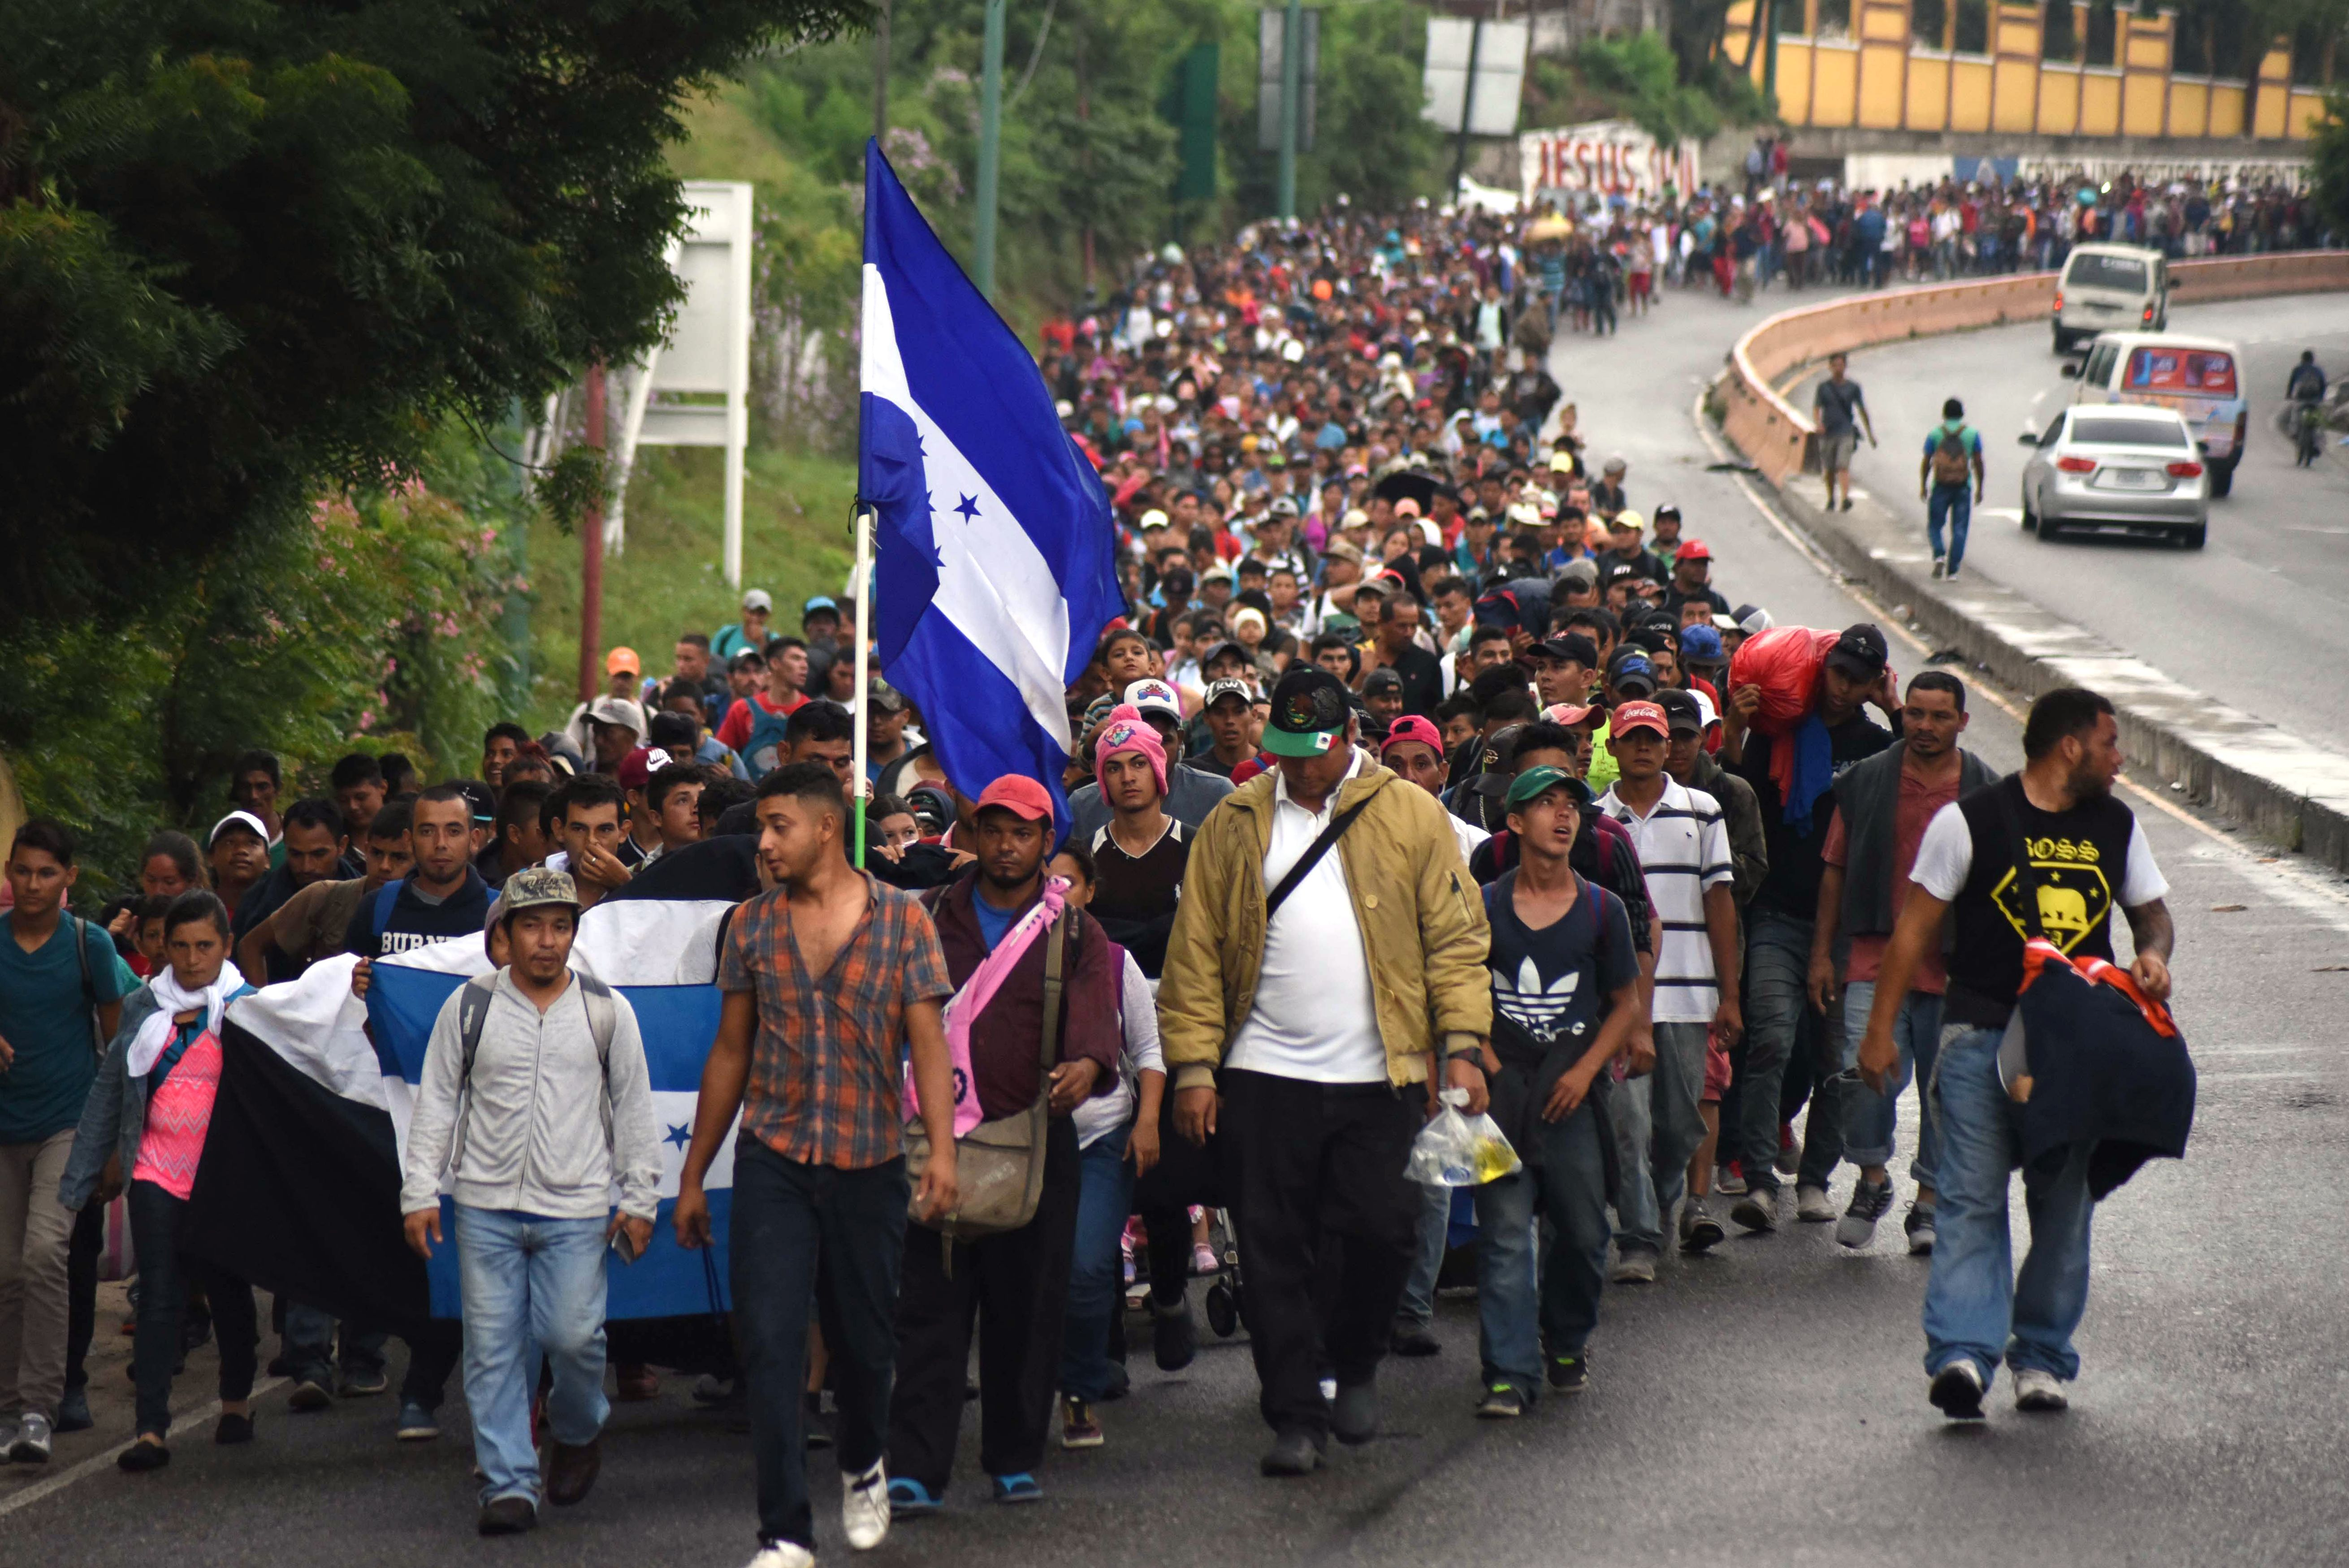 Honduran migrants take part in a caravan towards the United States in Chiquimula, Guatemala on October 17, 2018. ORLANDO ESTRADA/AFP/Getty Images